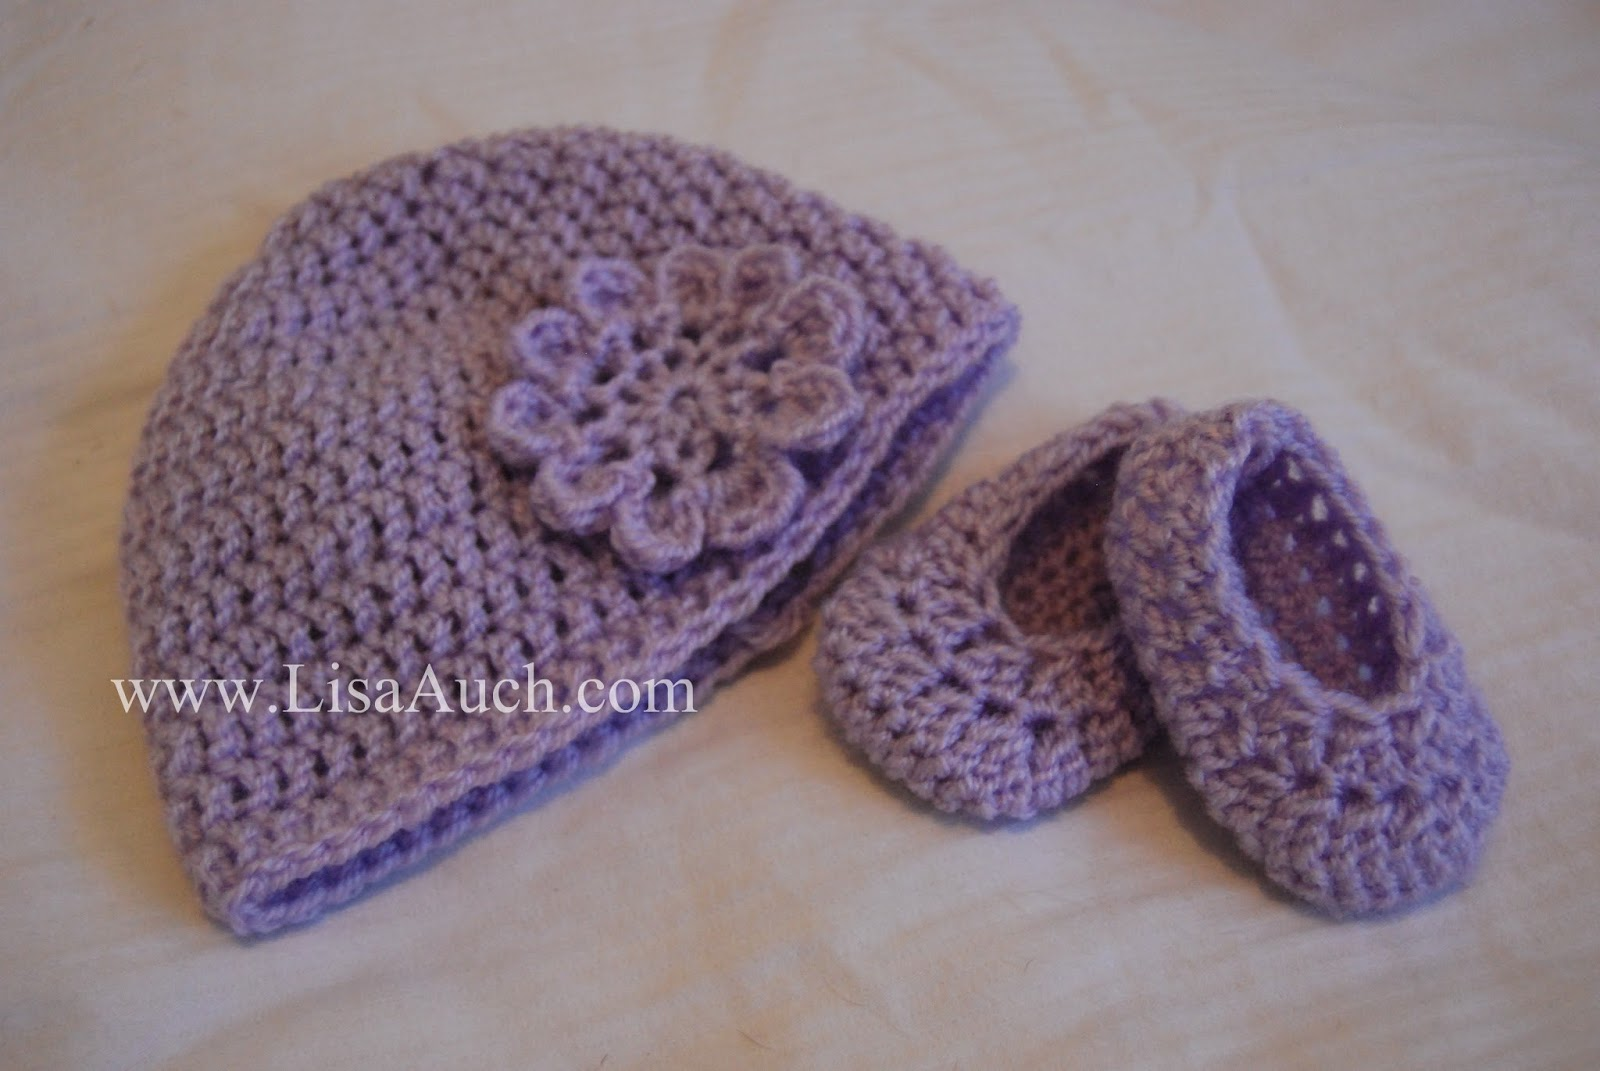 Crochet Baby Pattern Cardigan : Free Crochet Baby Booties and Hat Pattern